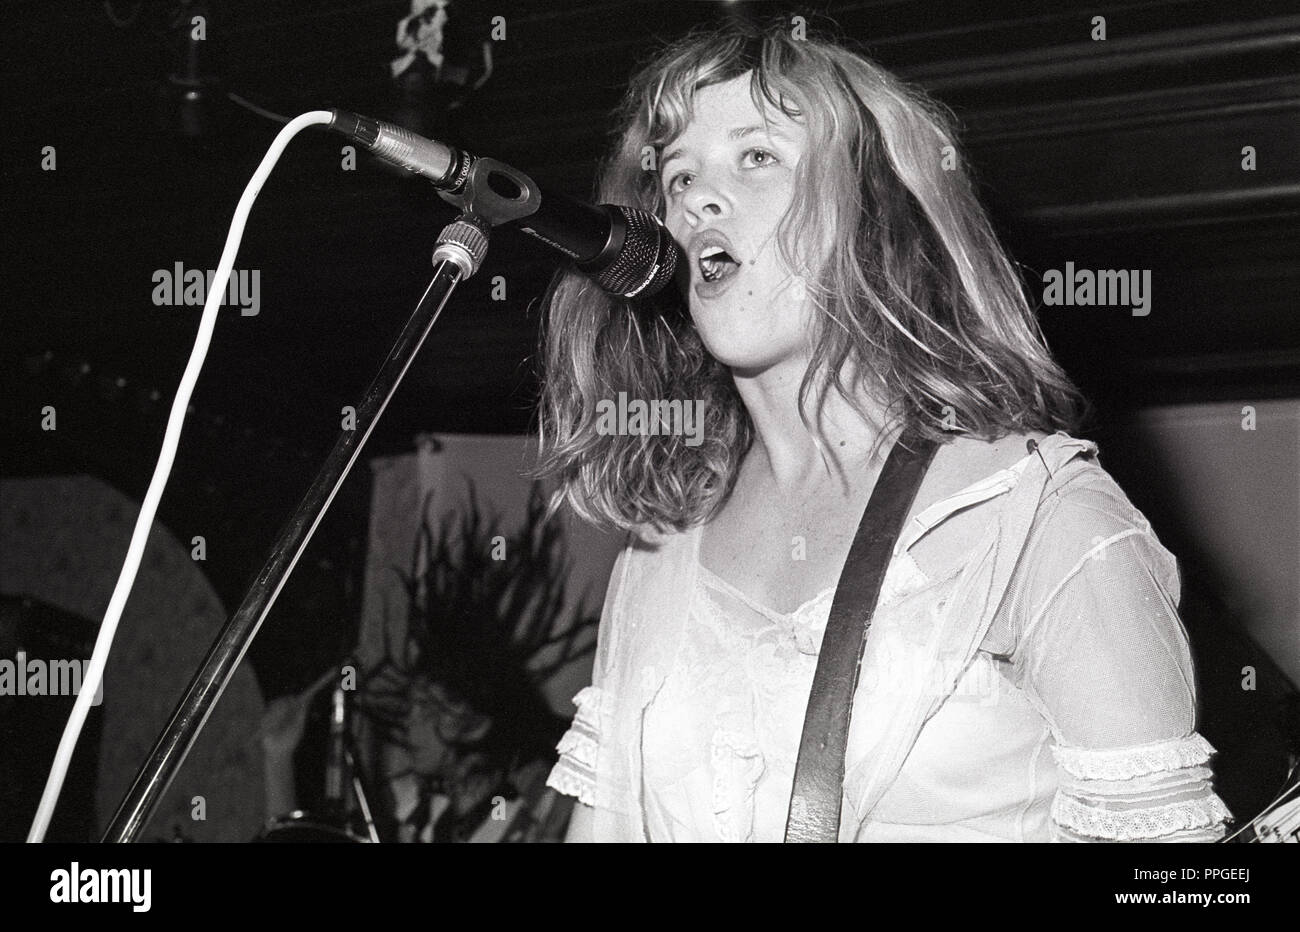 Babes in Toyland at Bedford Esquires, 05/10/1990. - Stock Image